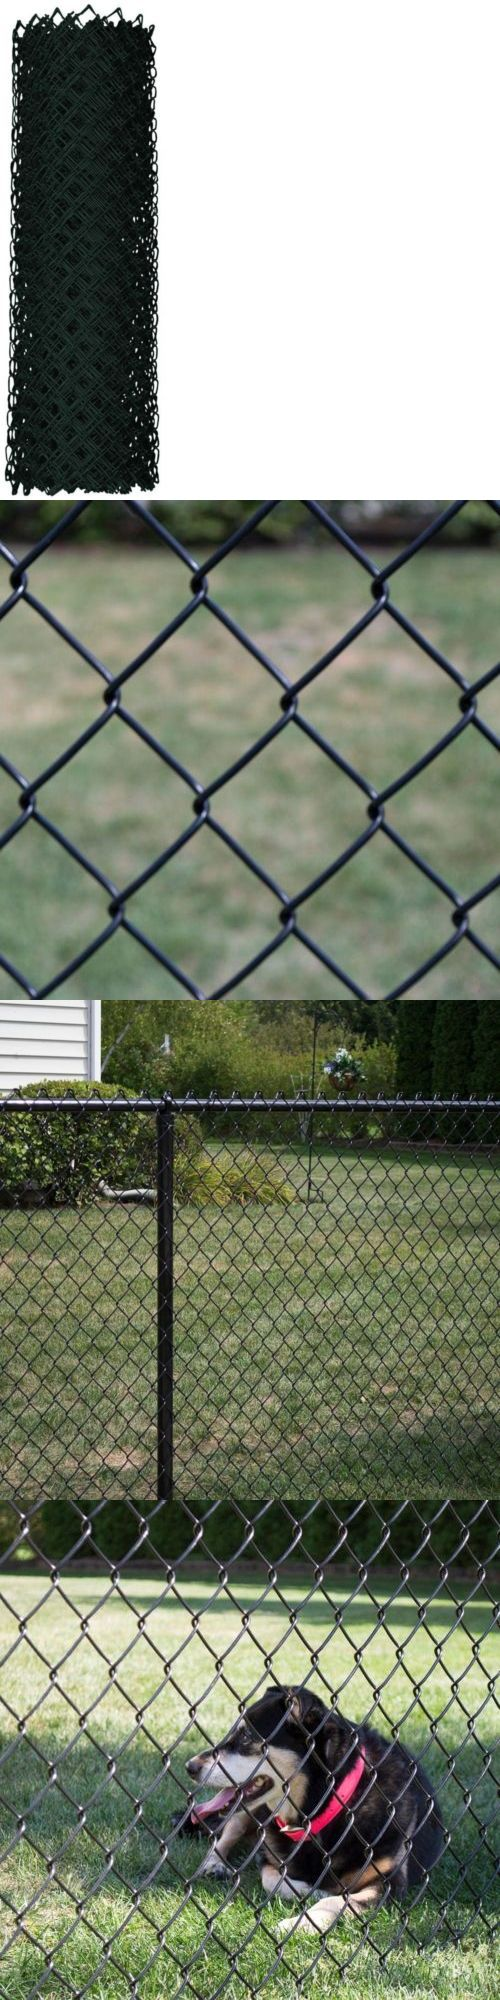 Privacy screen for chain link fence ebay - The 25 Best Chain Link Fencing Ideas On Pinterest Chain Link Fence Chain Link Fence Gate And Chain Fence